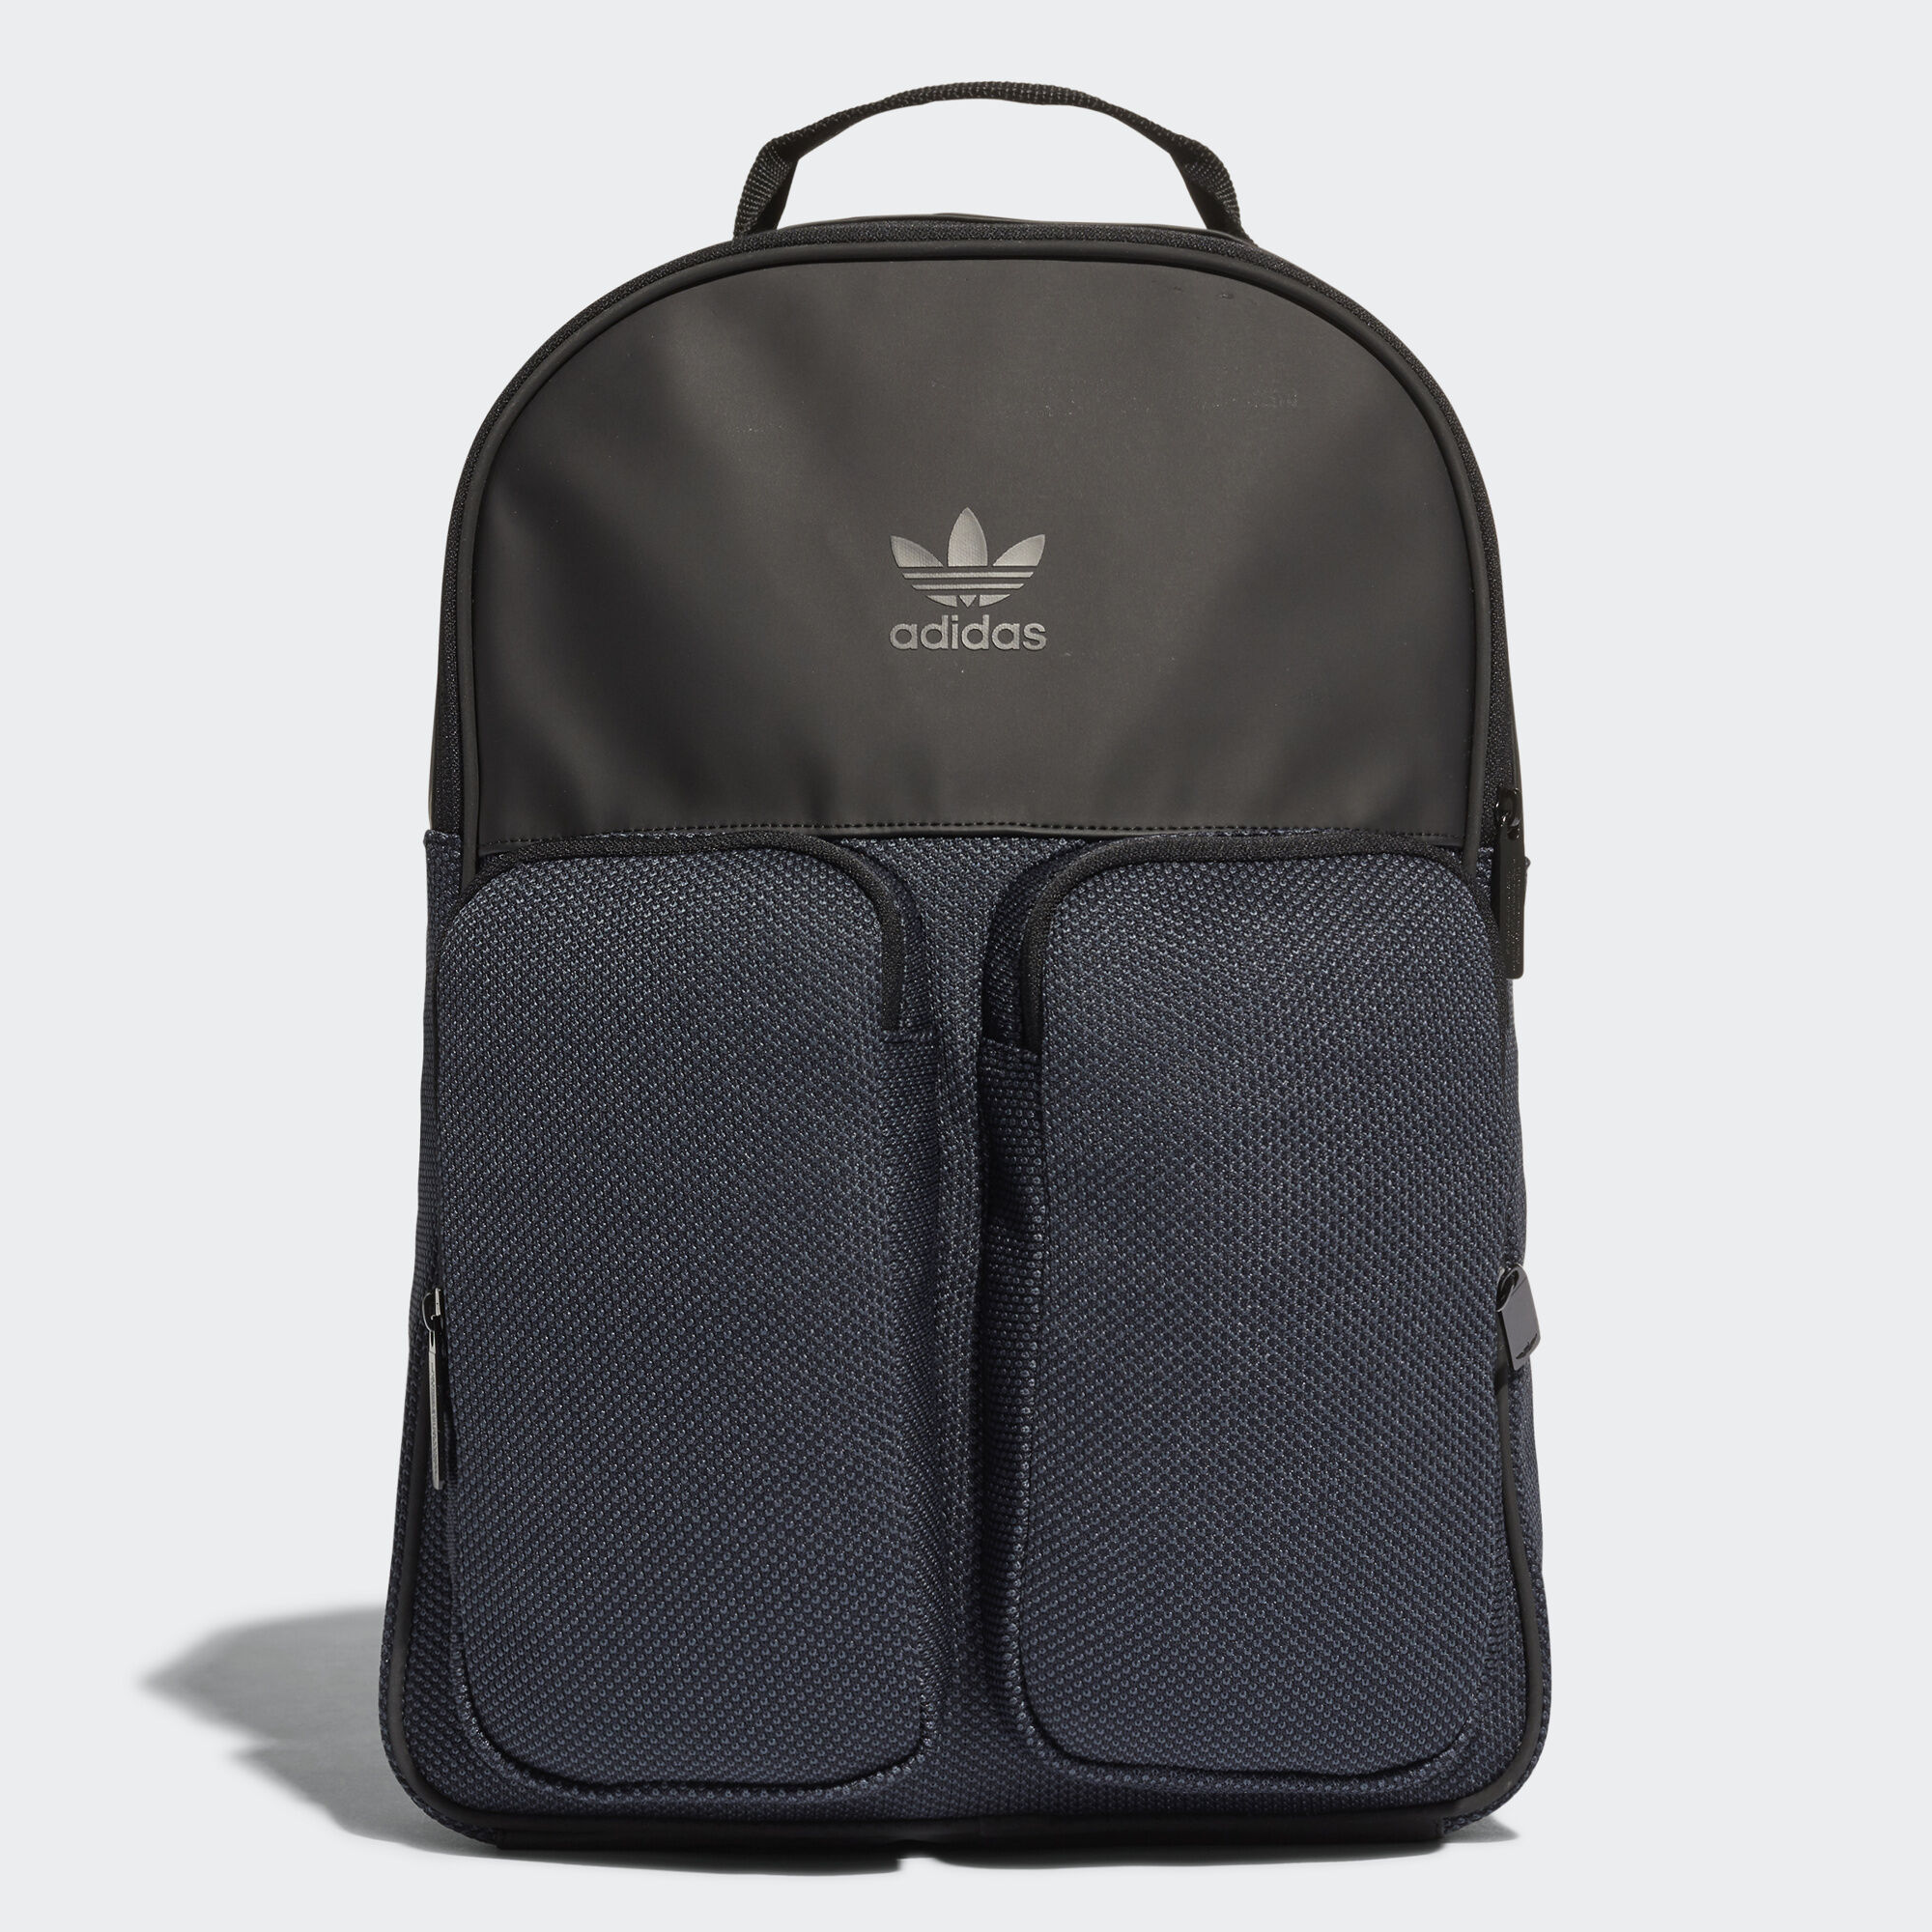 723e1f37c205 Buy adidas backpack load spring   OFF59% Discounted